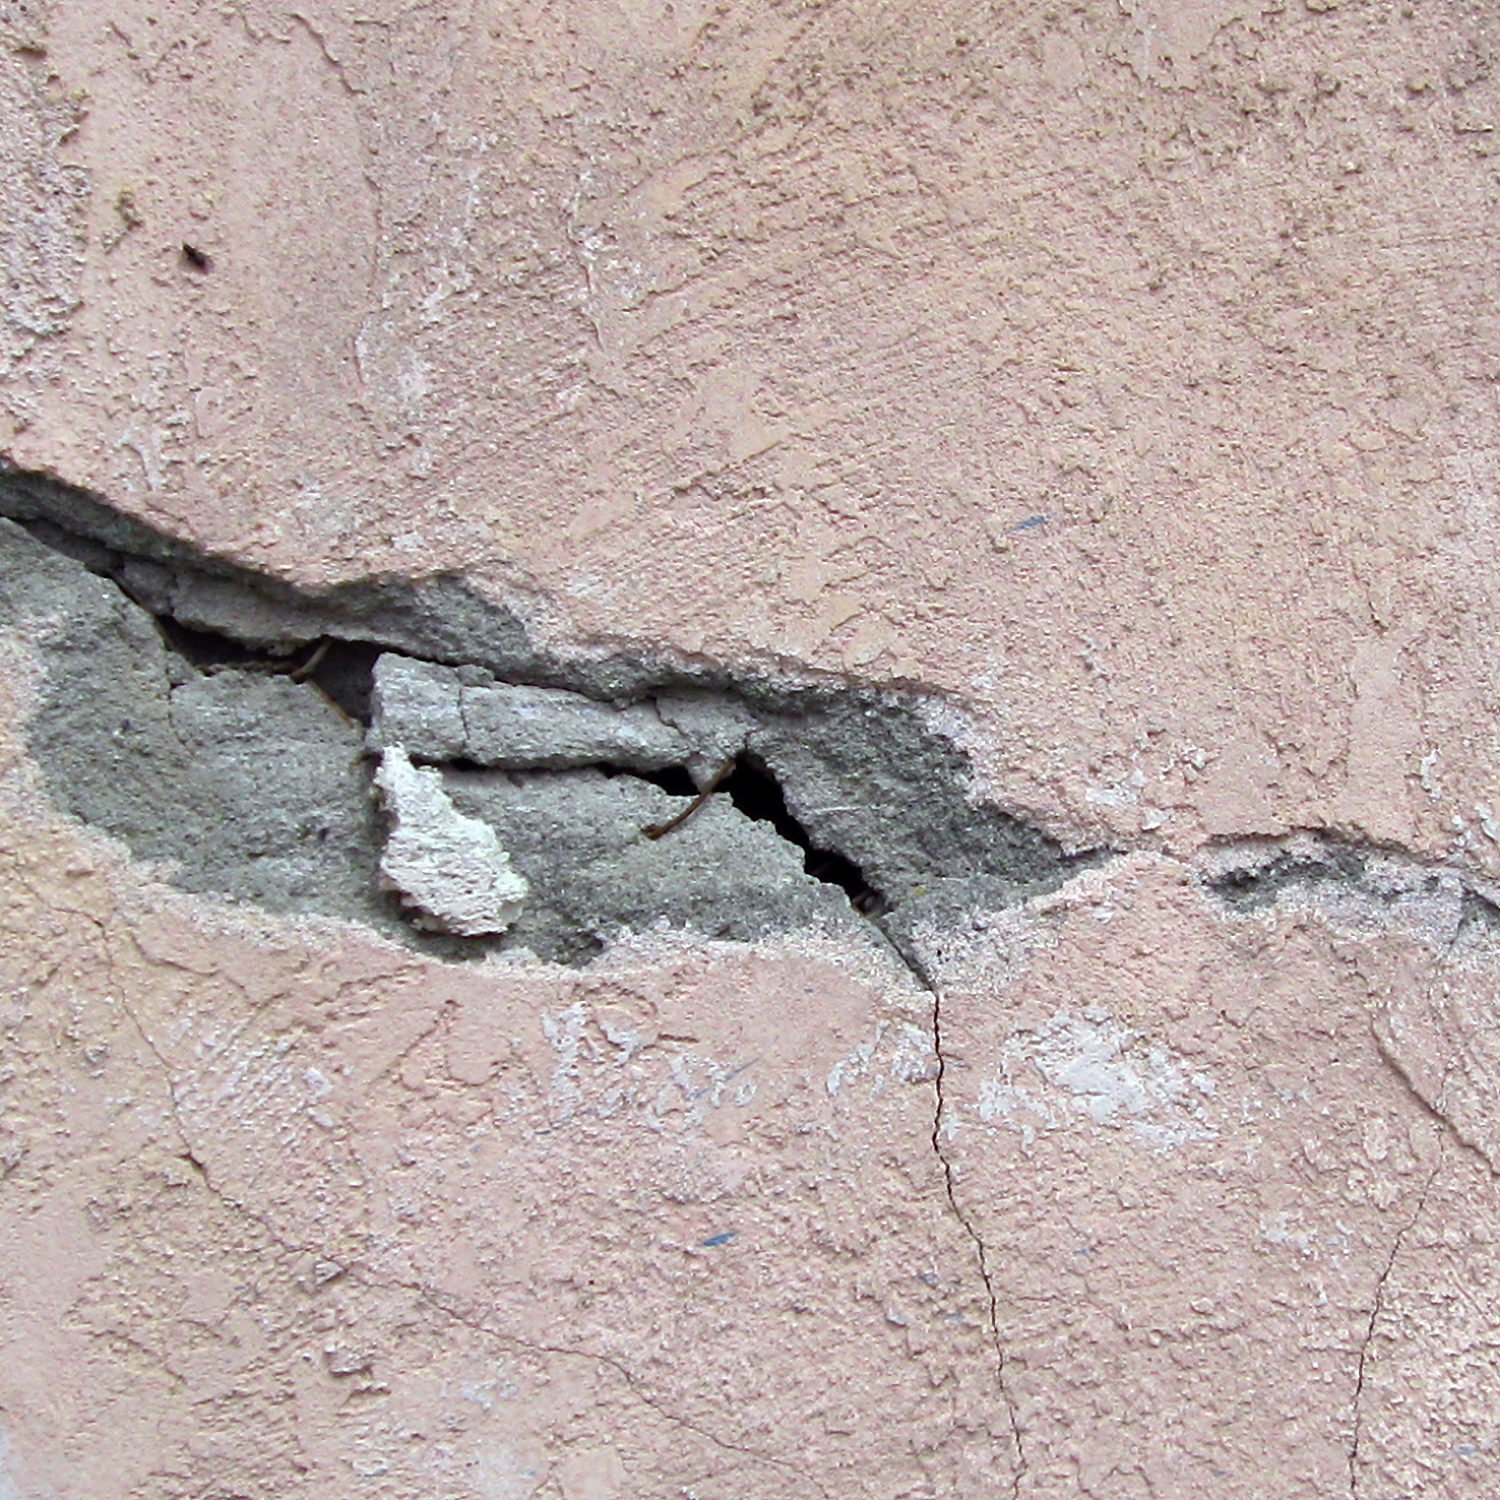 Figure 16. Impaired stucco stress fracture. Photo credit: Sherrie Thai.